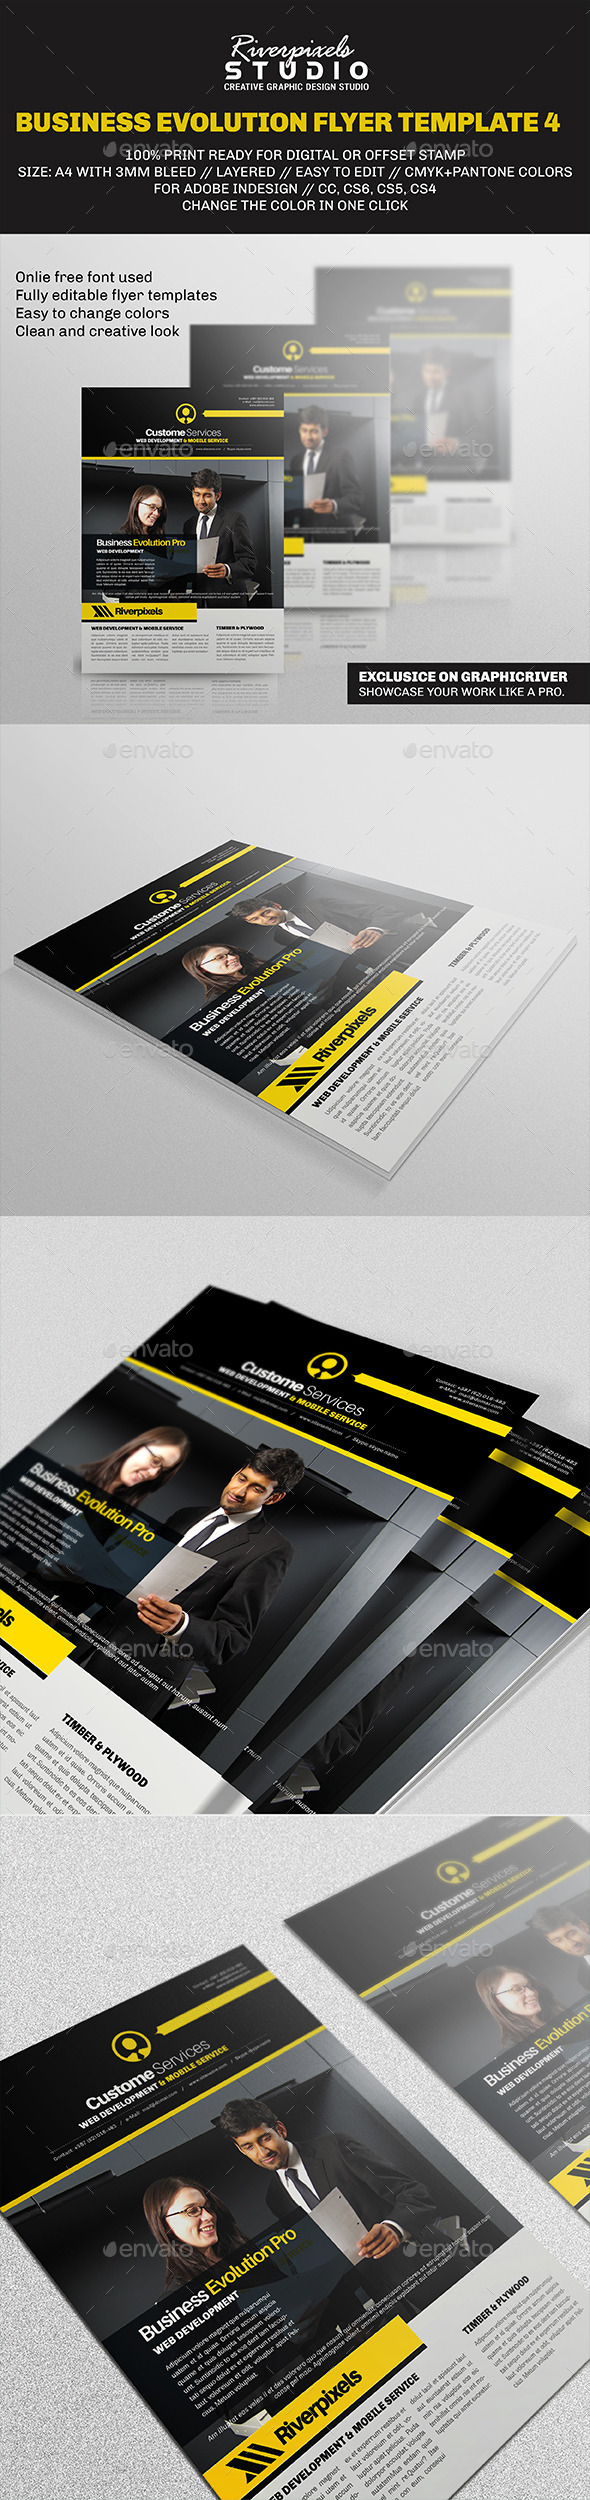 GraphicRiver Business Evolution Flyer Template IV 9692204